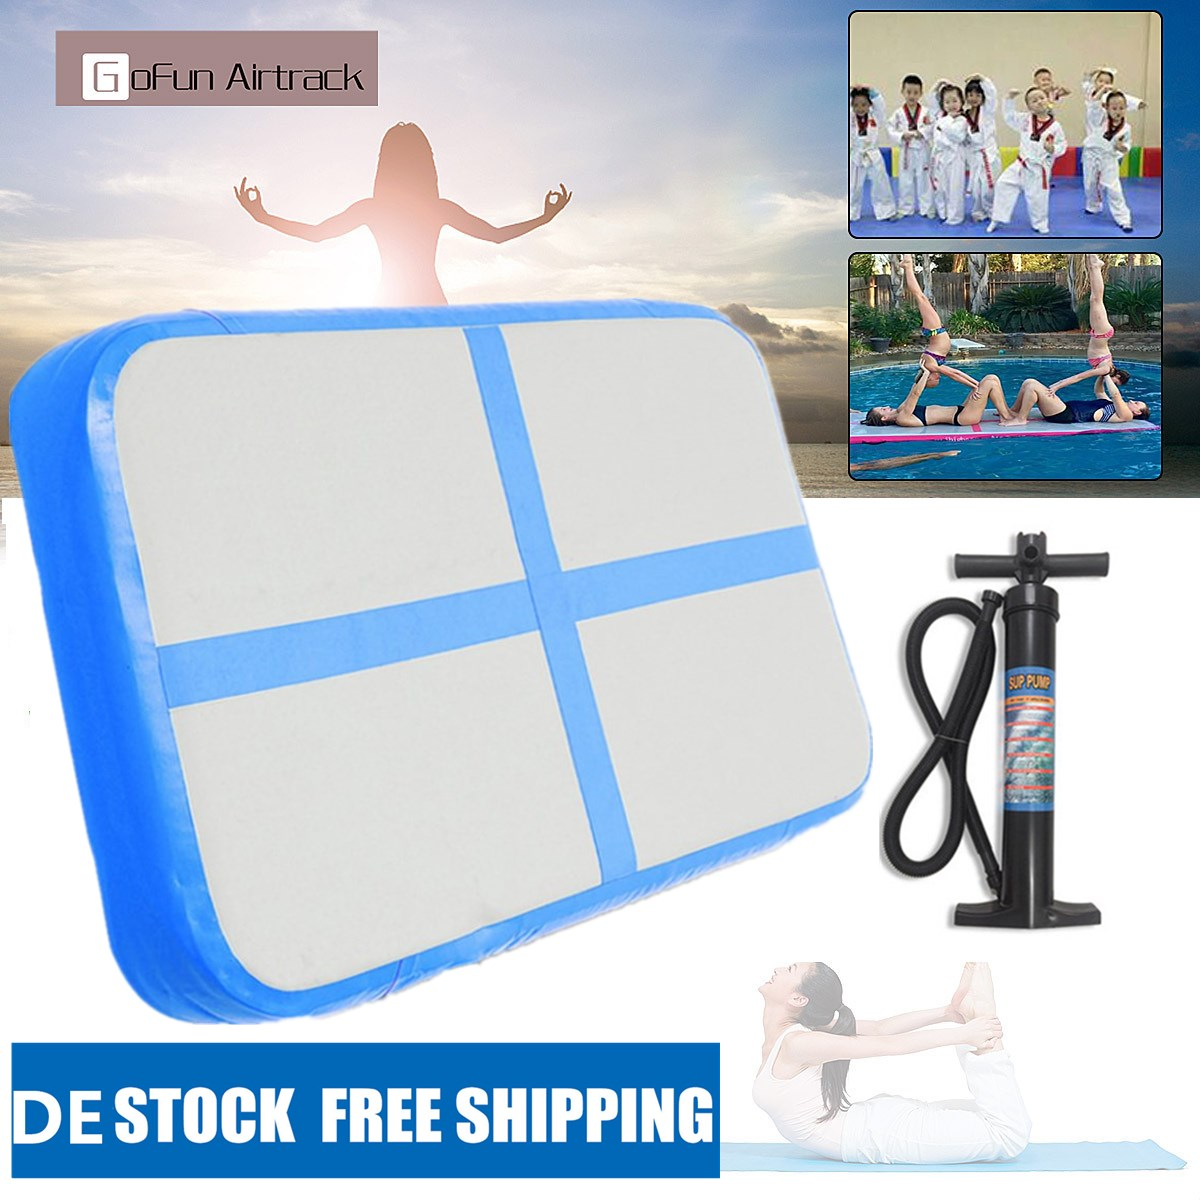 Inflatable Gymnastic Air Track Mat Floor Tumbling Yoga Cheerleading + Hand Pump